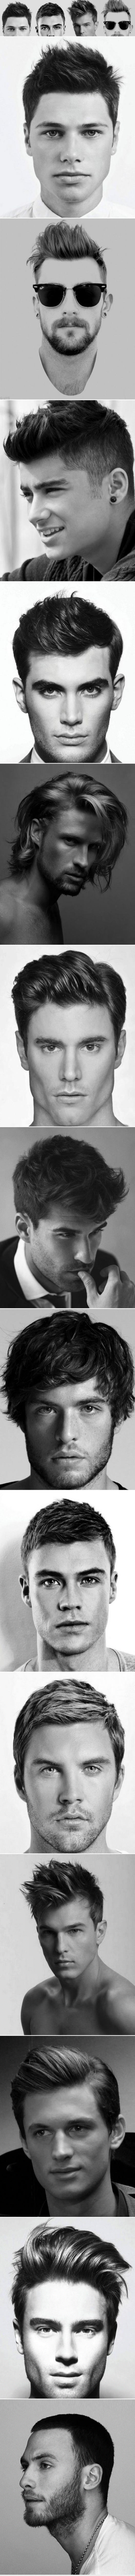 The Top 15 Best Modern Hairstyles For Men  Men's fashion and style doesn't always refer to clothing, things such as having your hairstyle right can make a bold impression and help any man to stand out. Chances are you're interested looking at the modern hairstyles for men and figuring out which one is right for you. But for men choosing new hairstyles can often be a difficult process, since a haircut represents our individual style and personality. Some men elect for short hairstyles while…